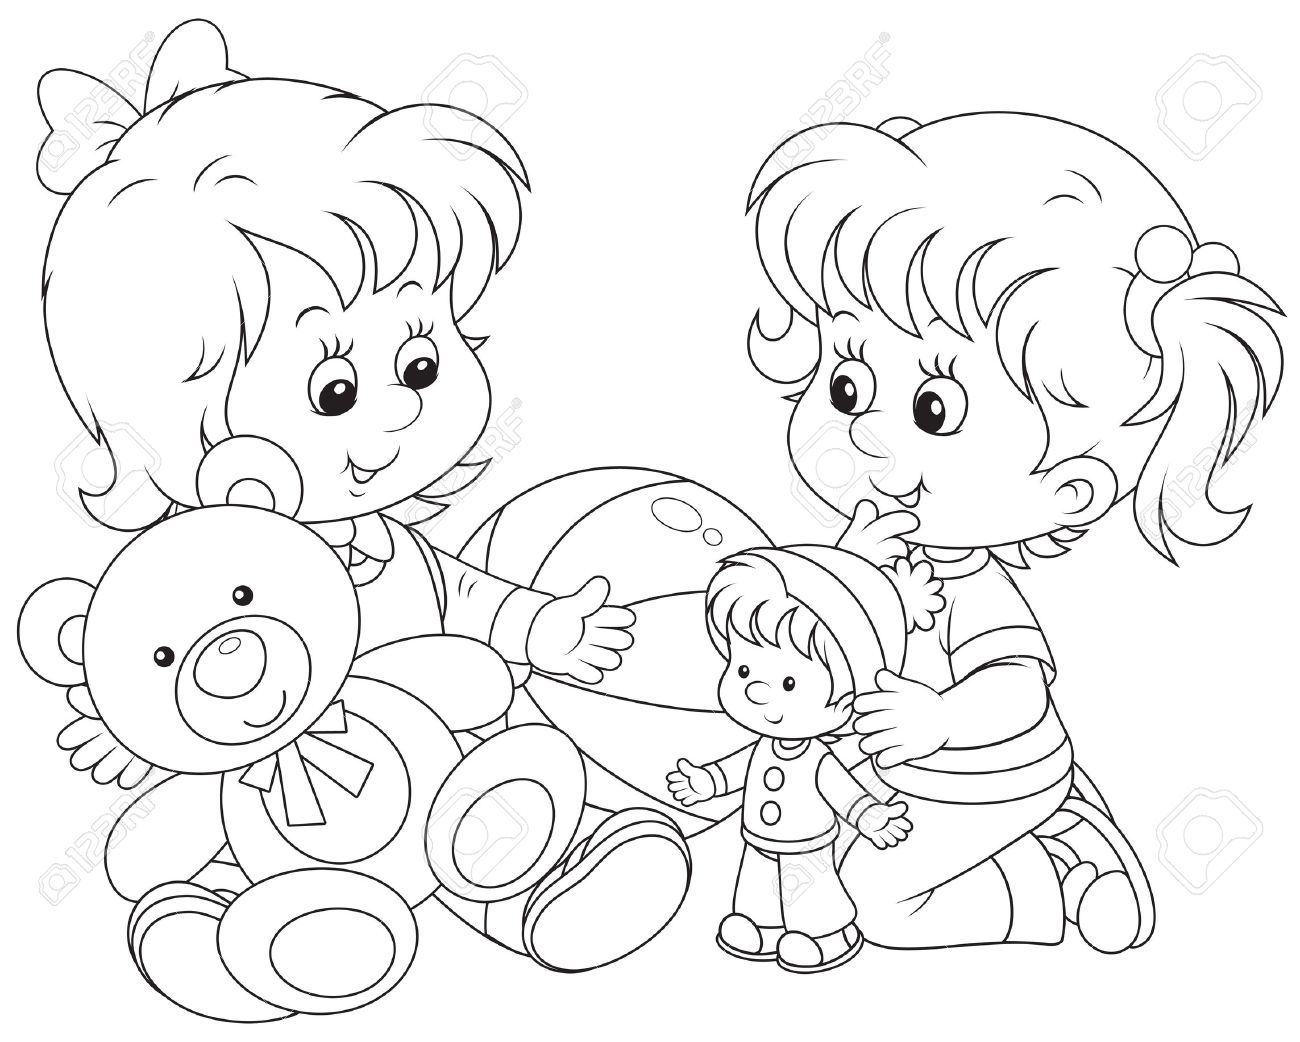 kid outline coloring page clipart black and white children playing with toys page kid outline coloring